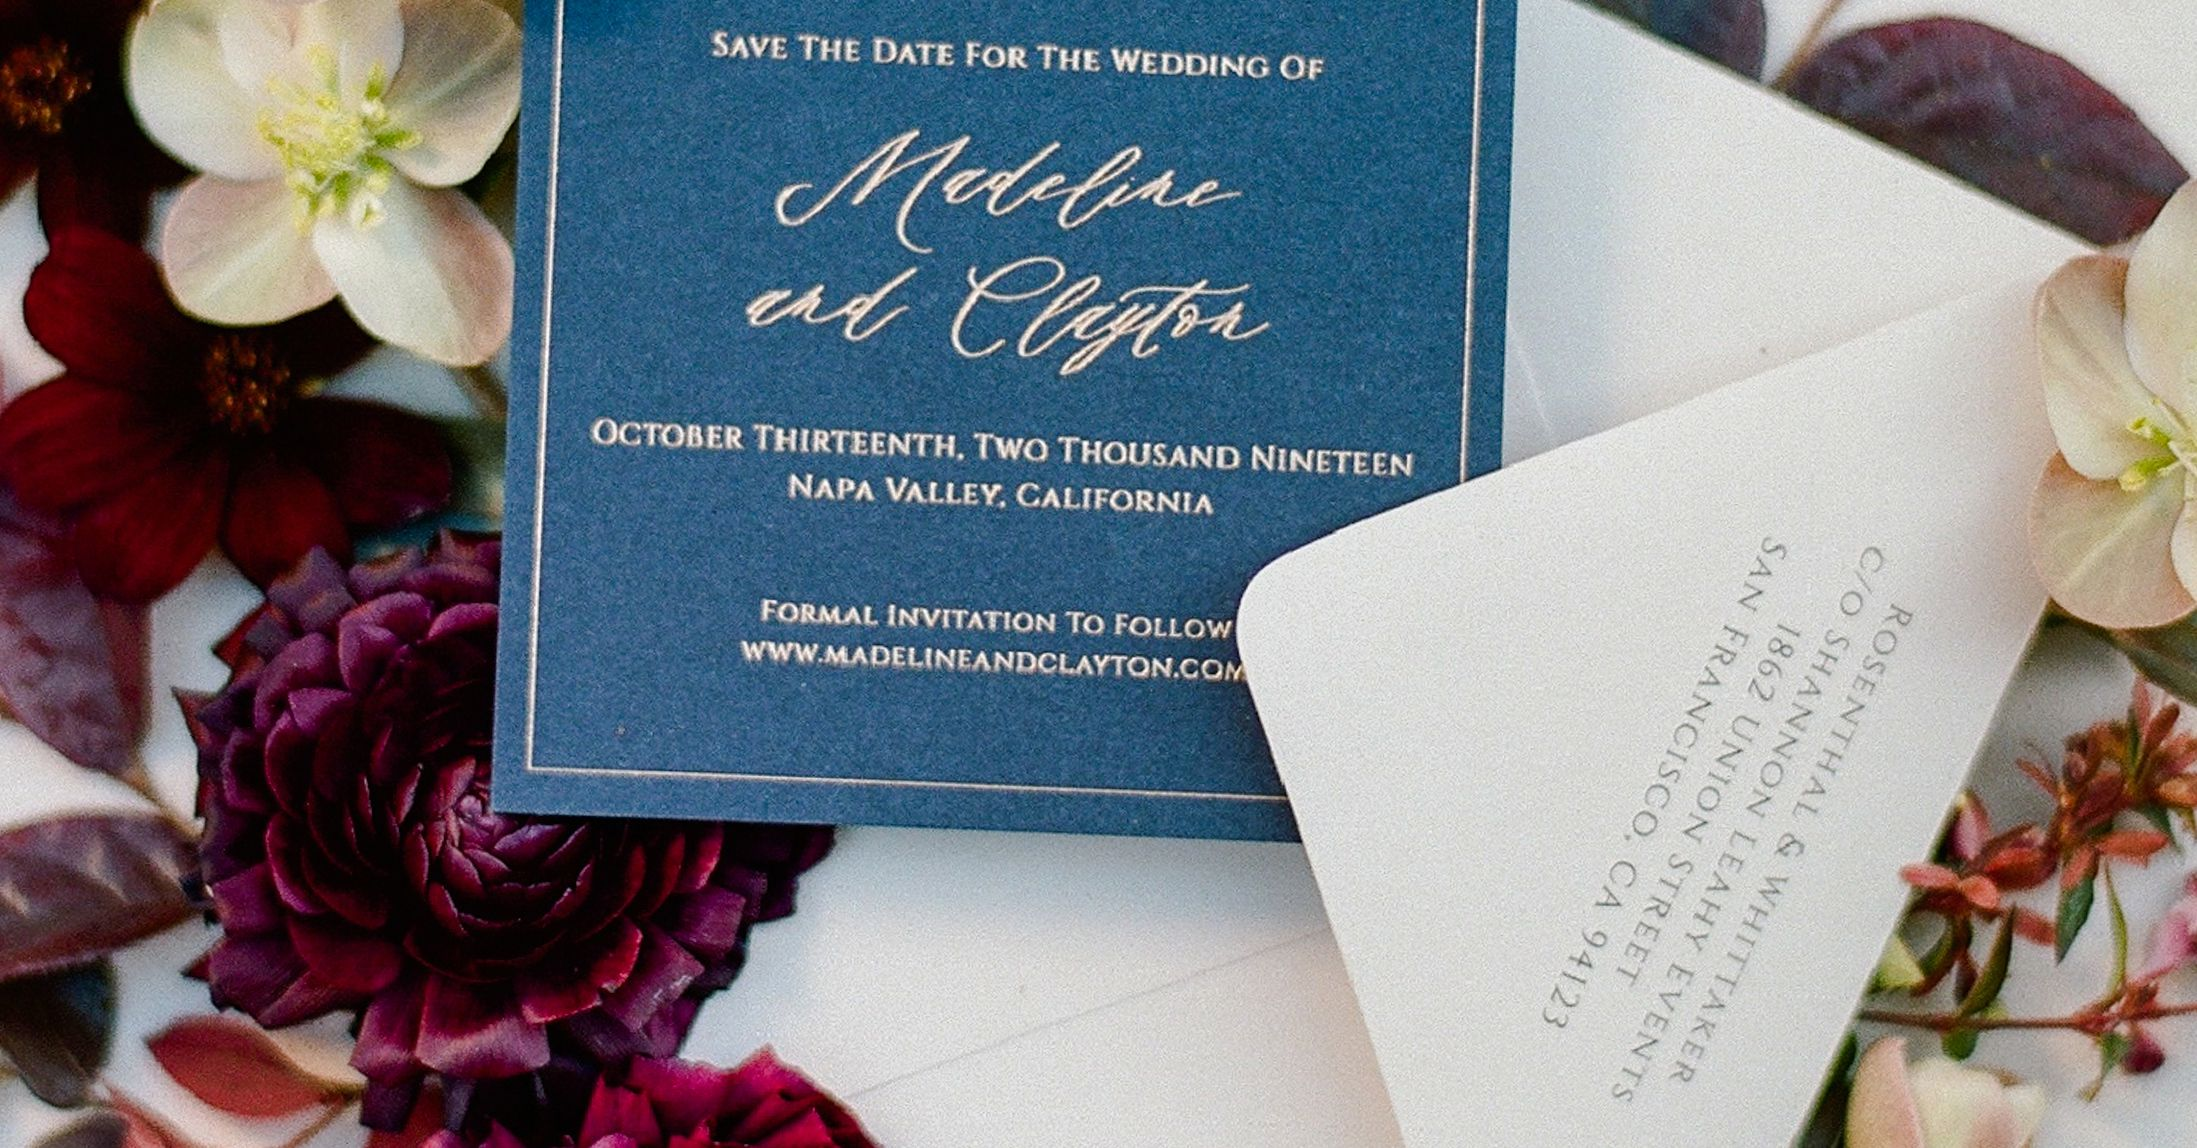 How To Address Your Save The Date Envelopes